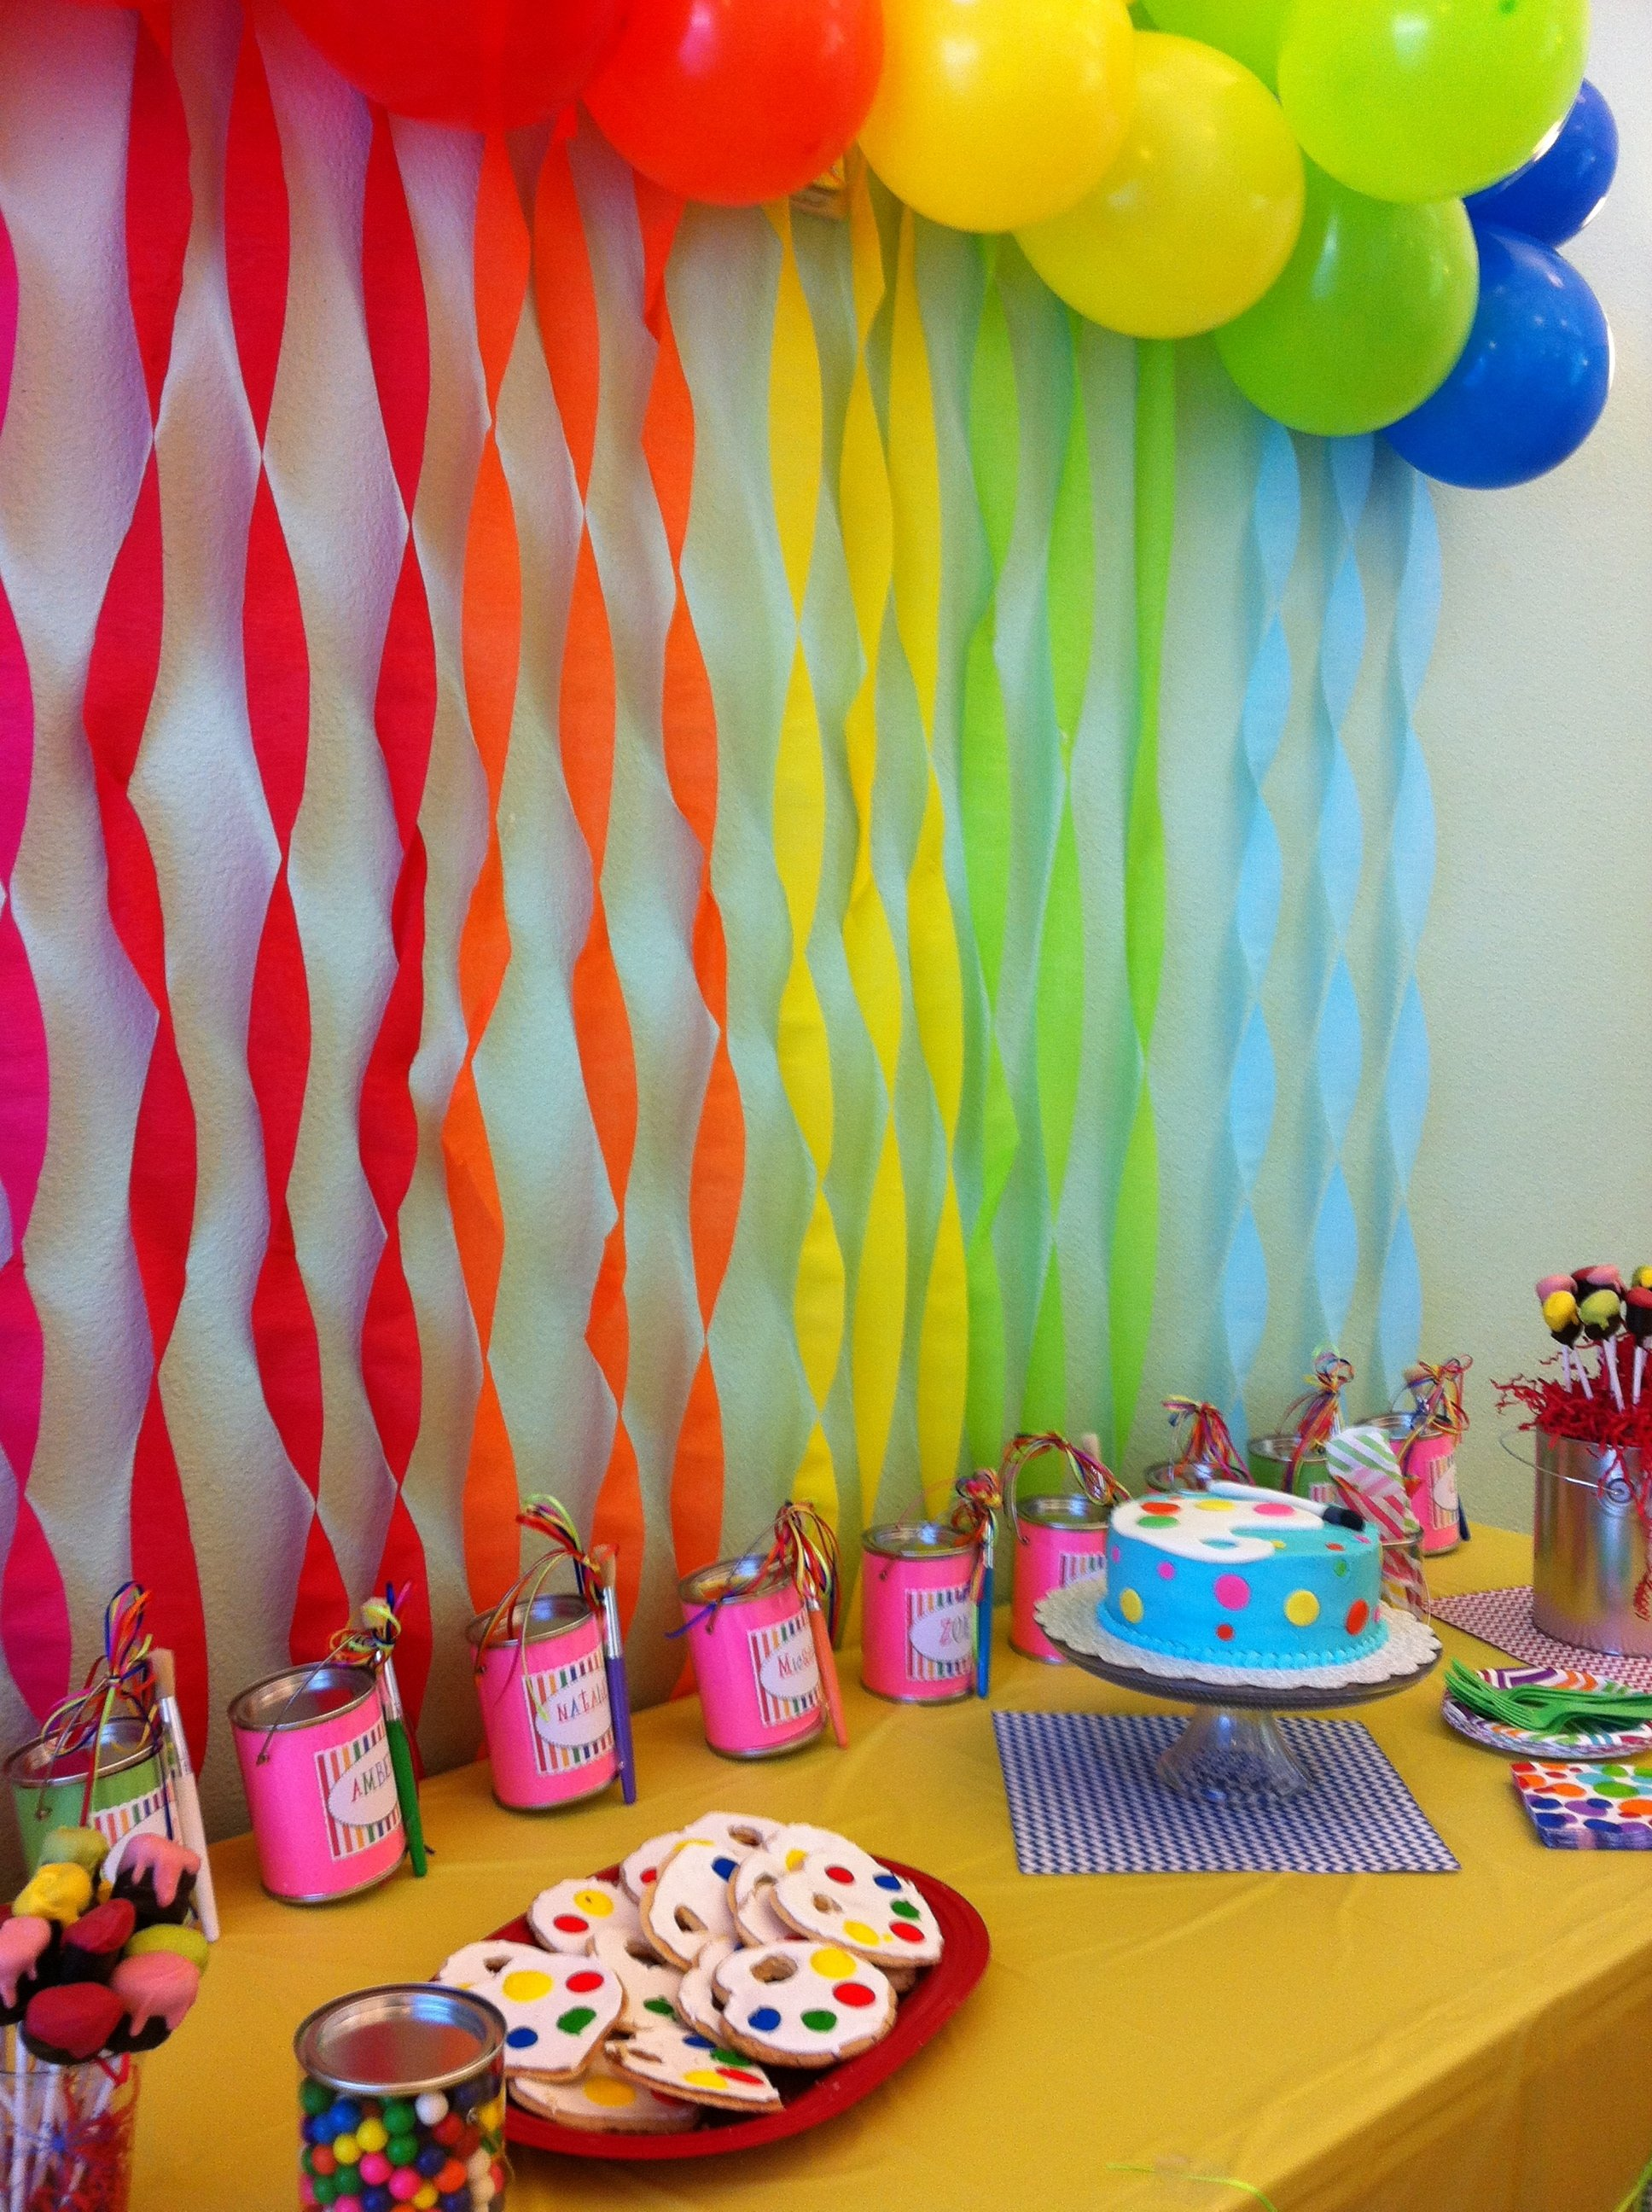 10 Gorgeous Ideas For A 12 Year Old Birthday Party 21 Decorations Diy Tags